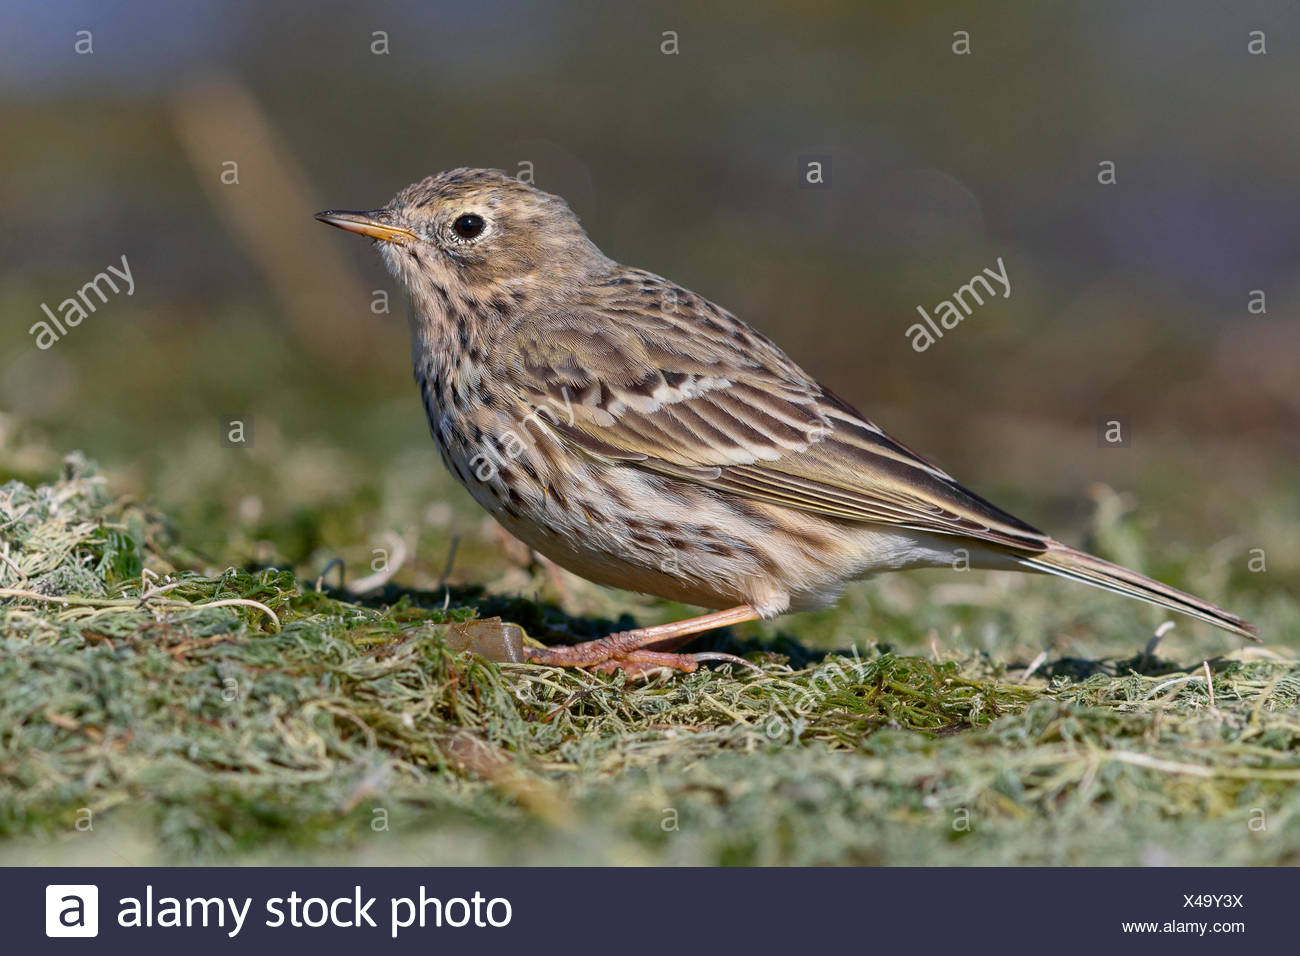 Meadow pipit (Anthus pratensis), standing on ground, Campania, Italy Stock Photo